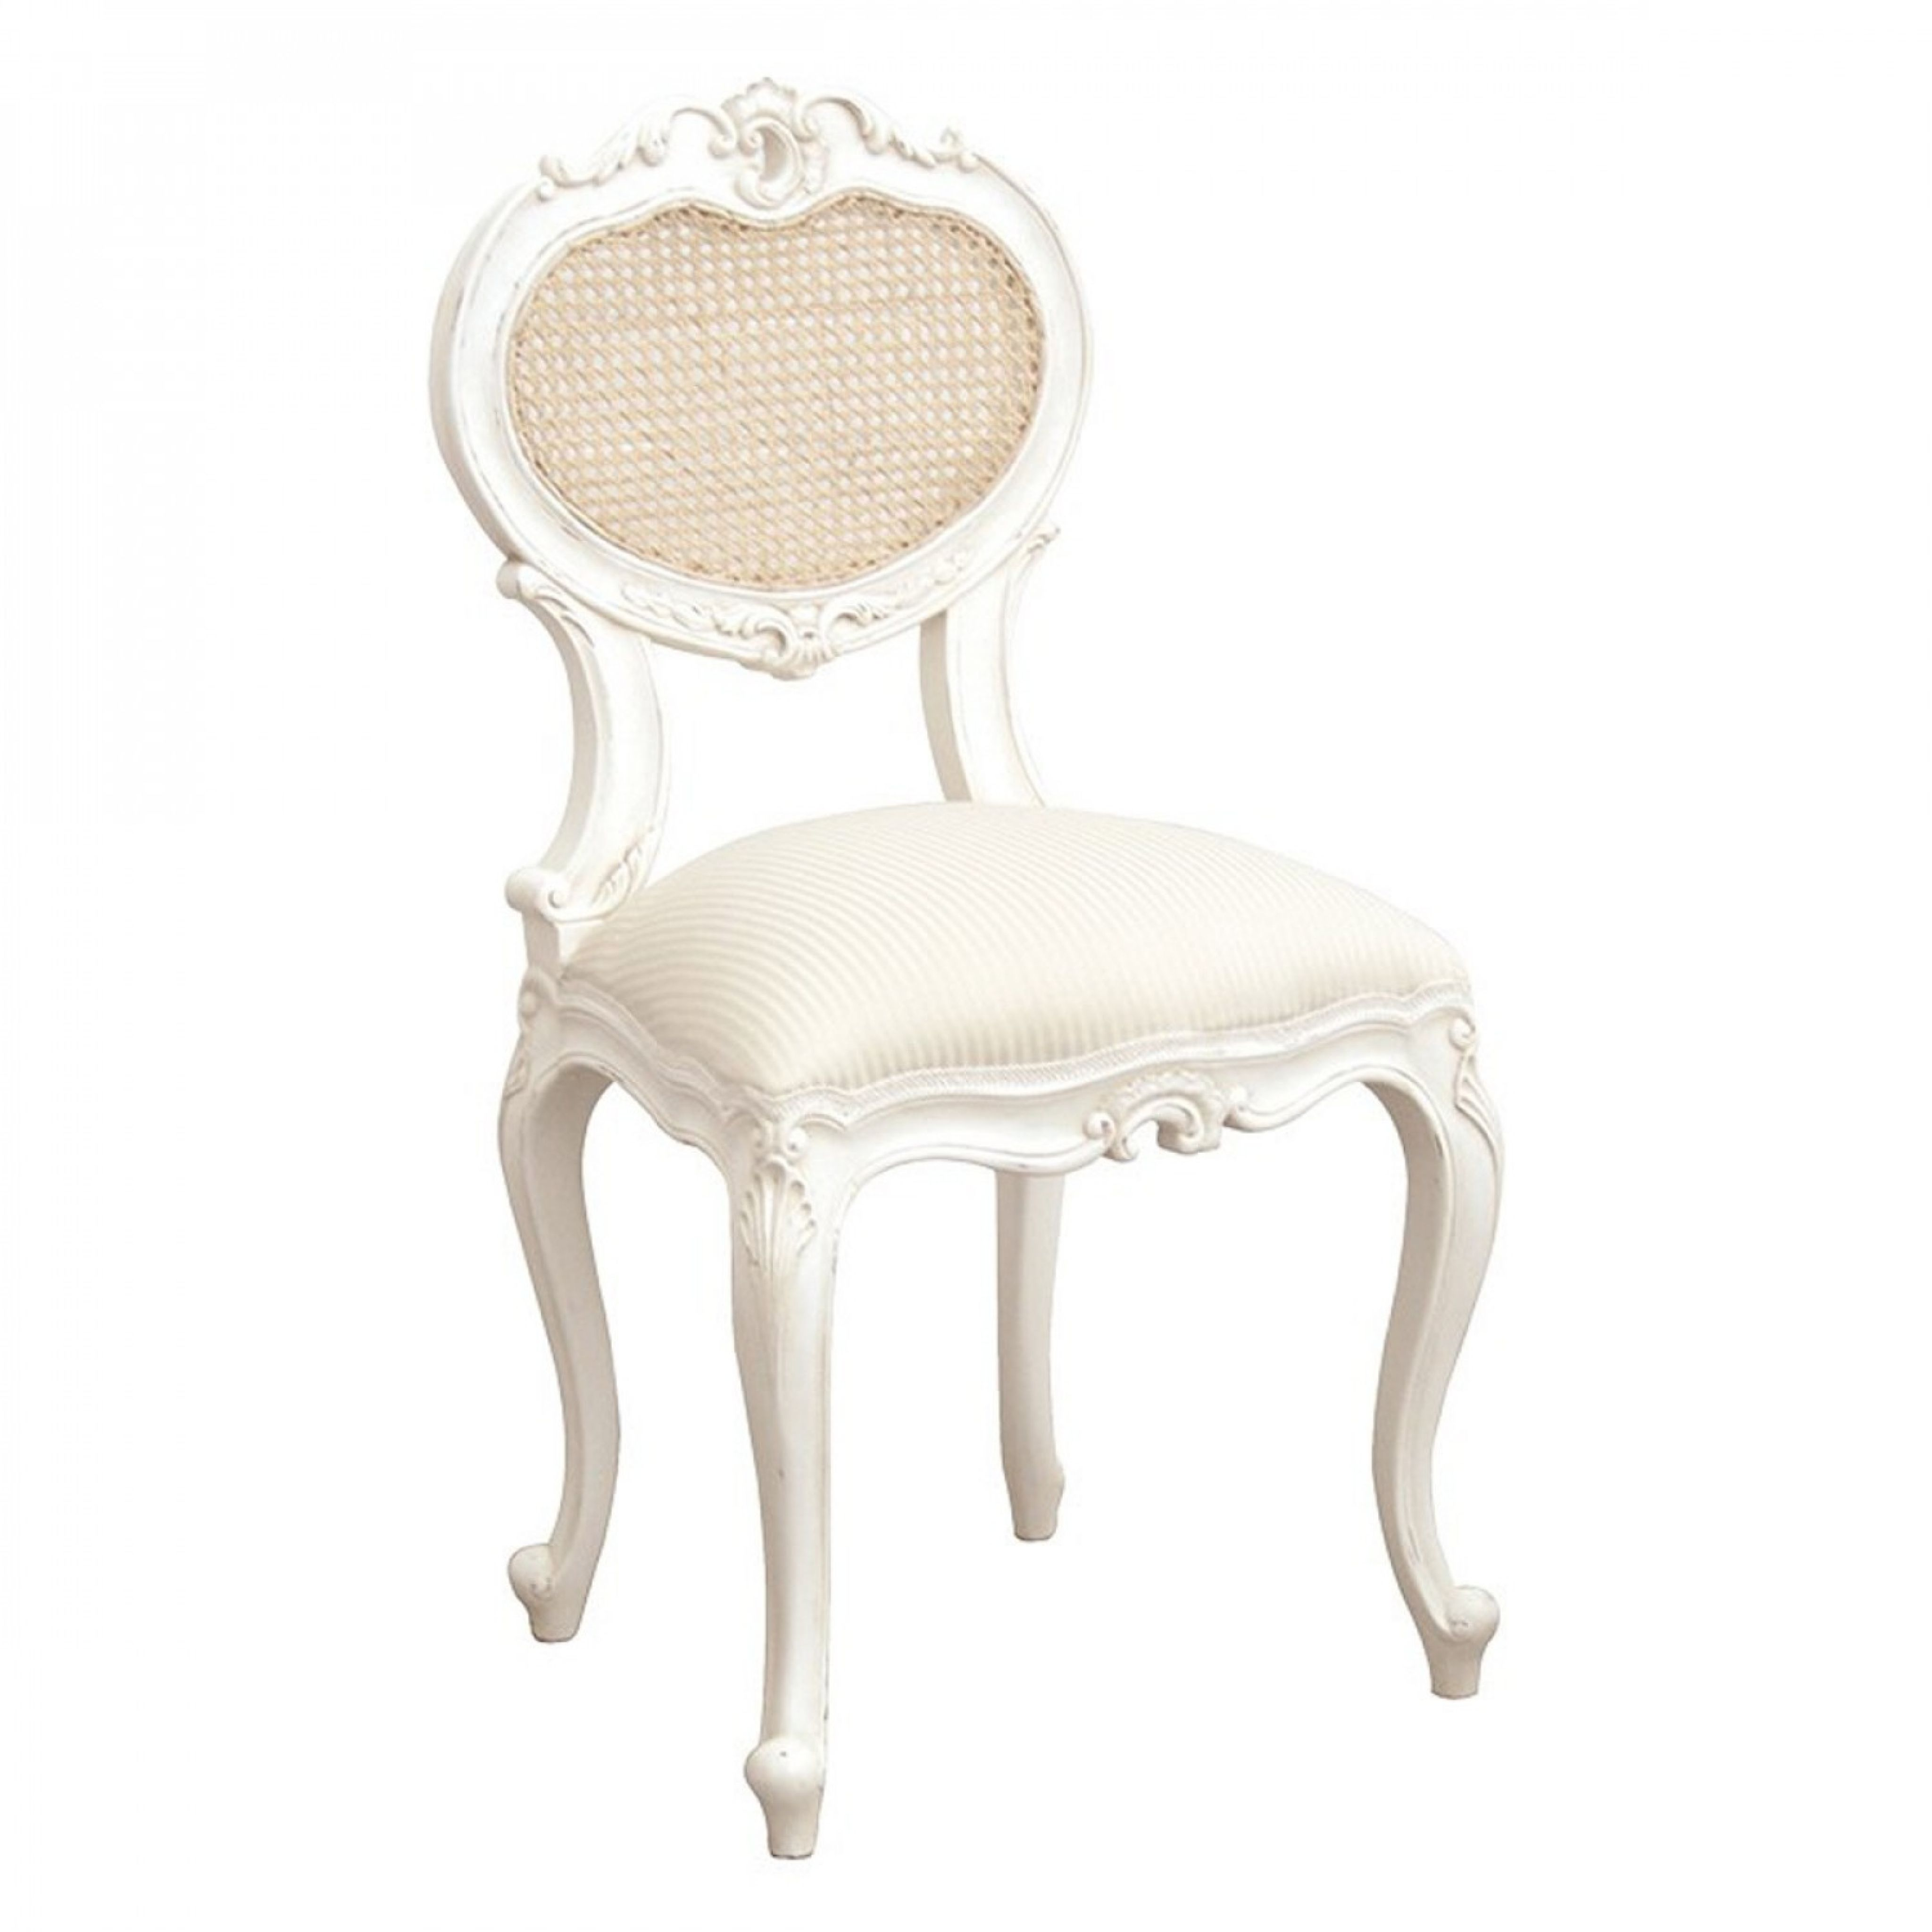 White Bedroom Chair - best paint for interior walls | Modern Home ...